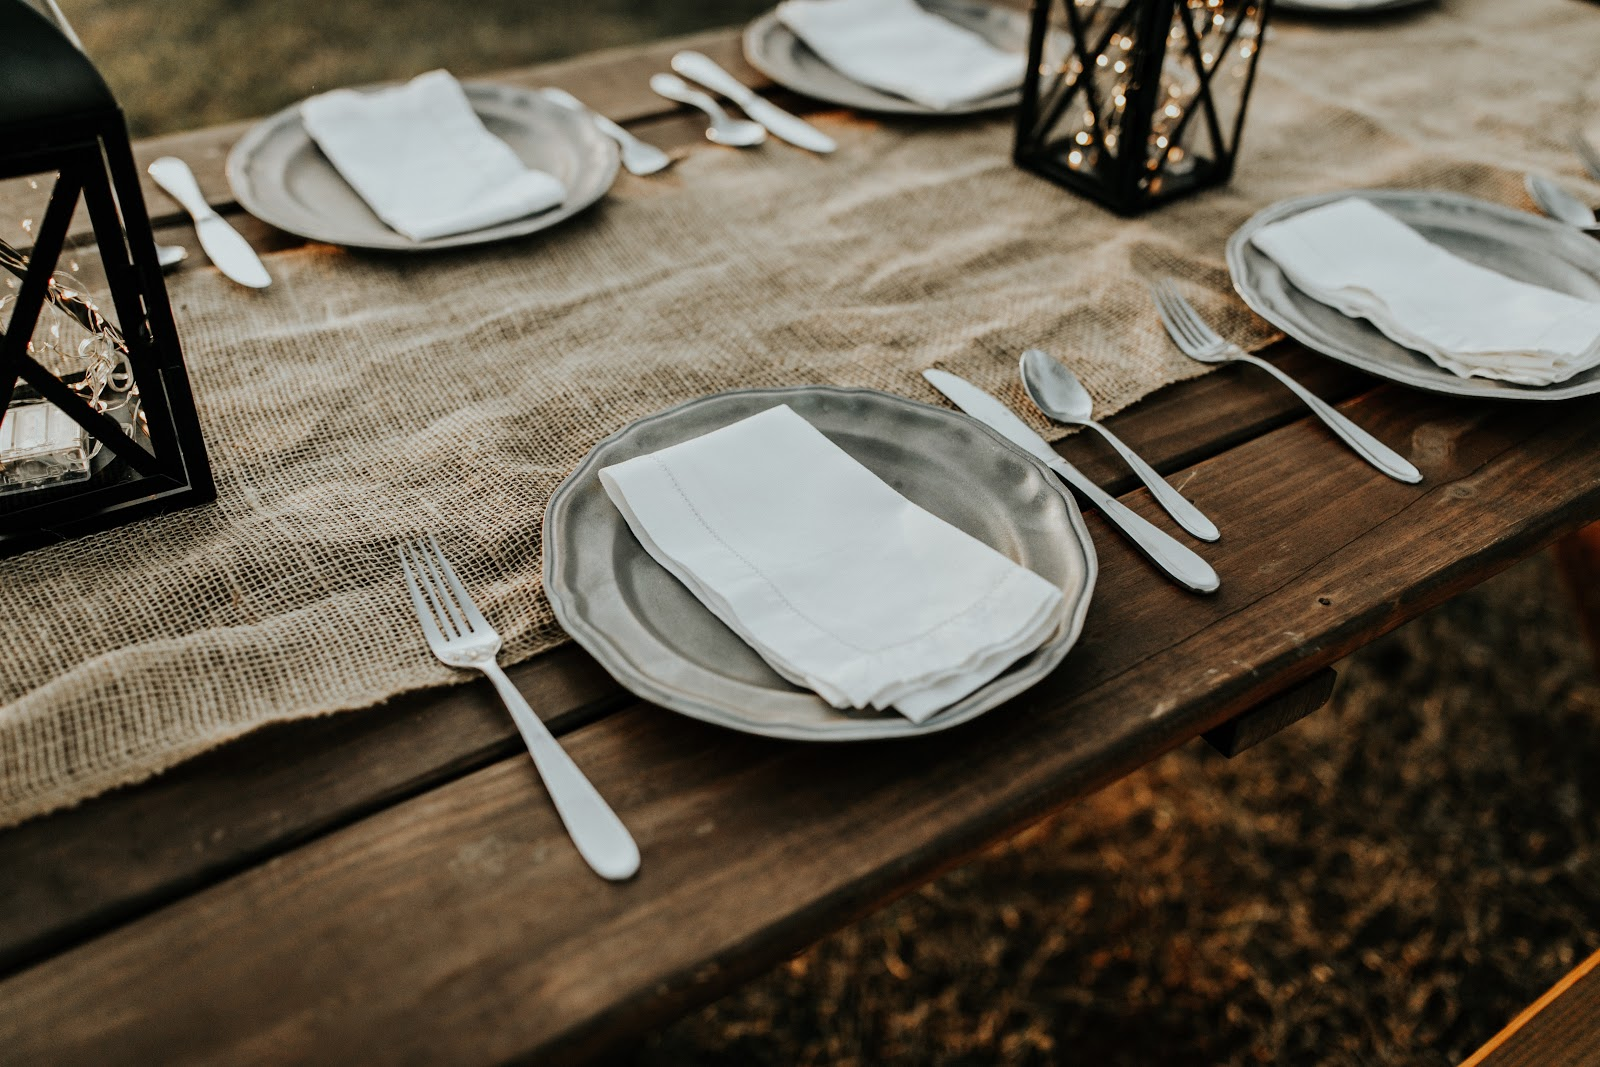 paper wrapped table with place settings, forks and knives